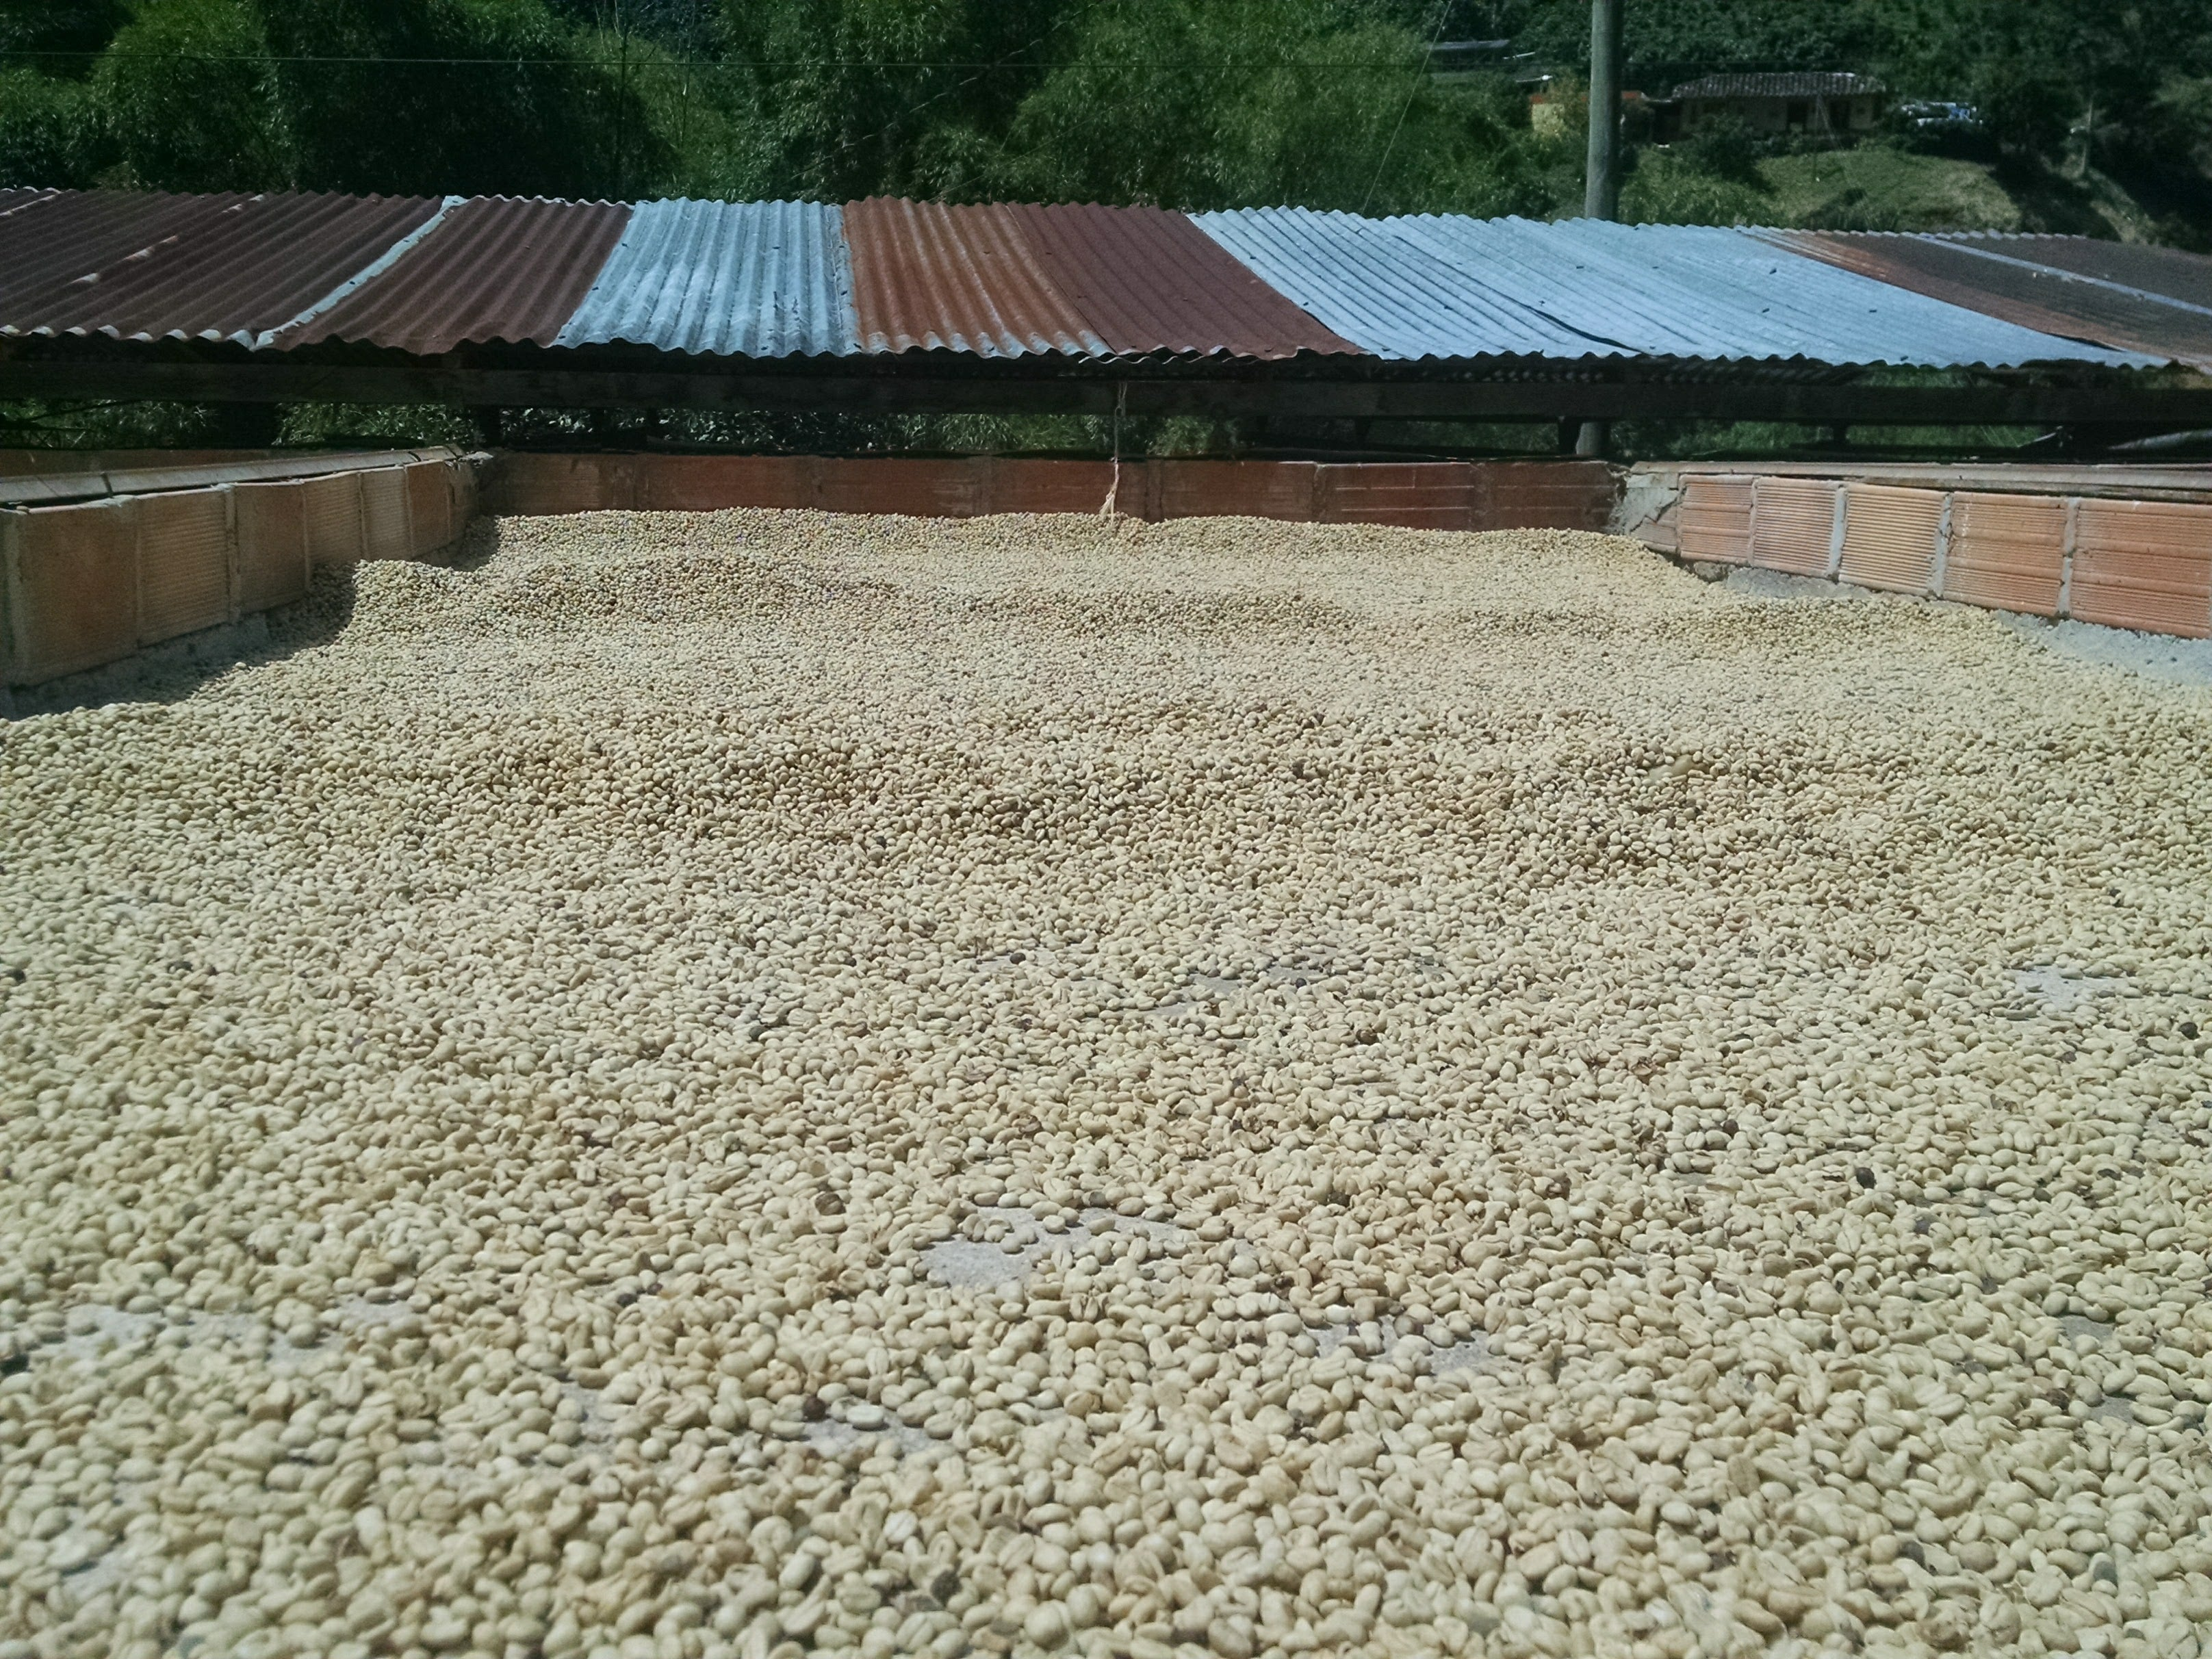 La Arboleda's sun drying space on roof, close up. Notice the thin layer and it has to be raked about every hour